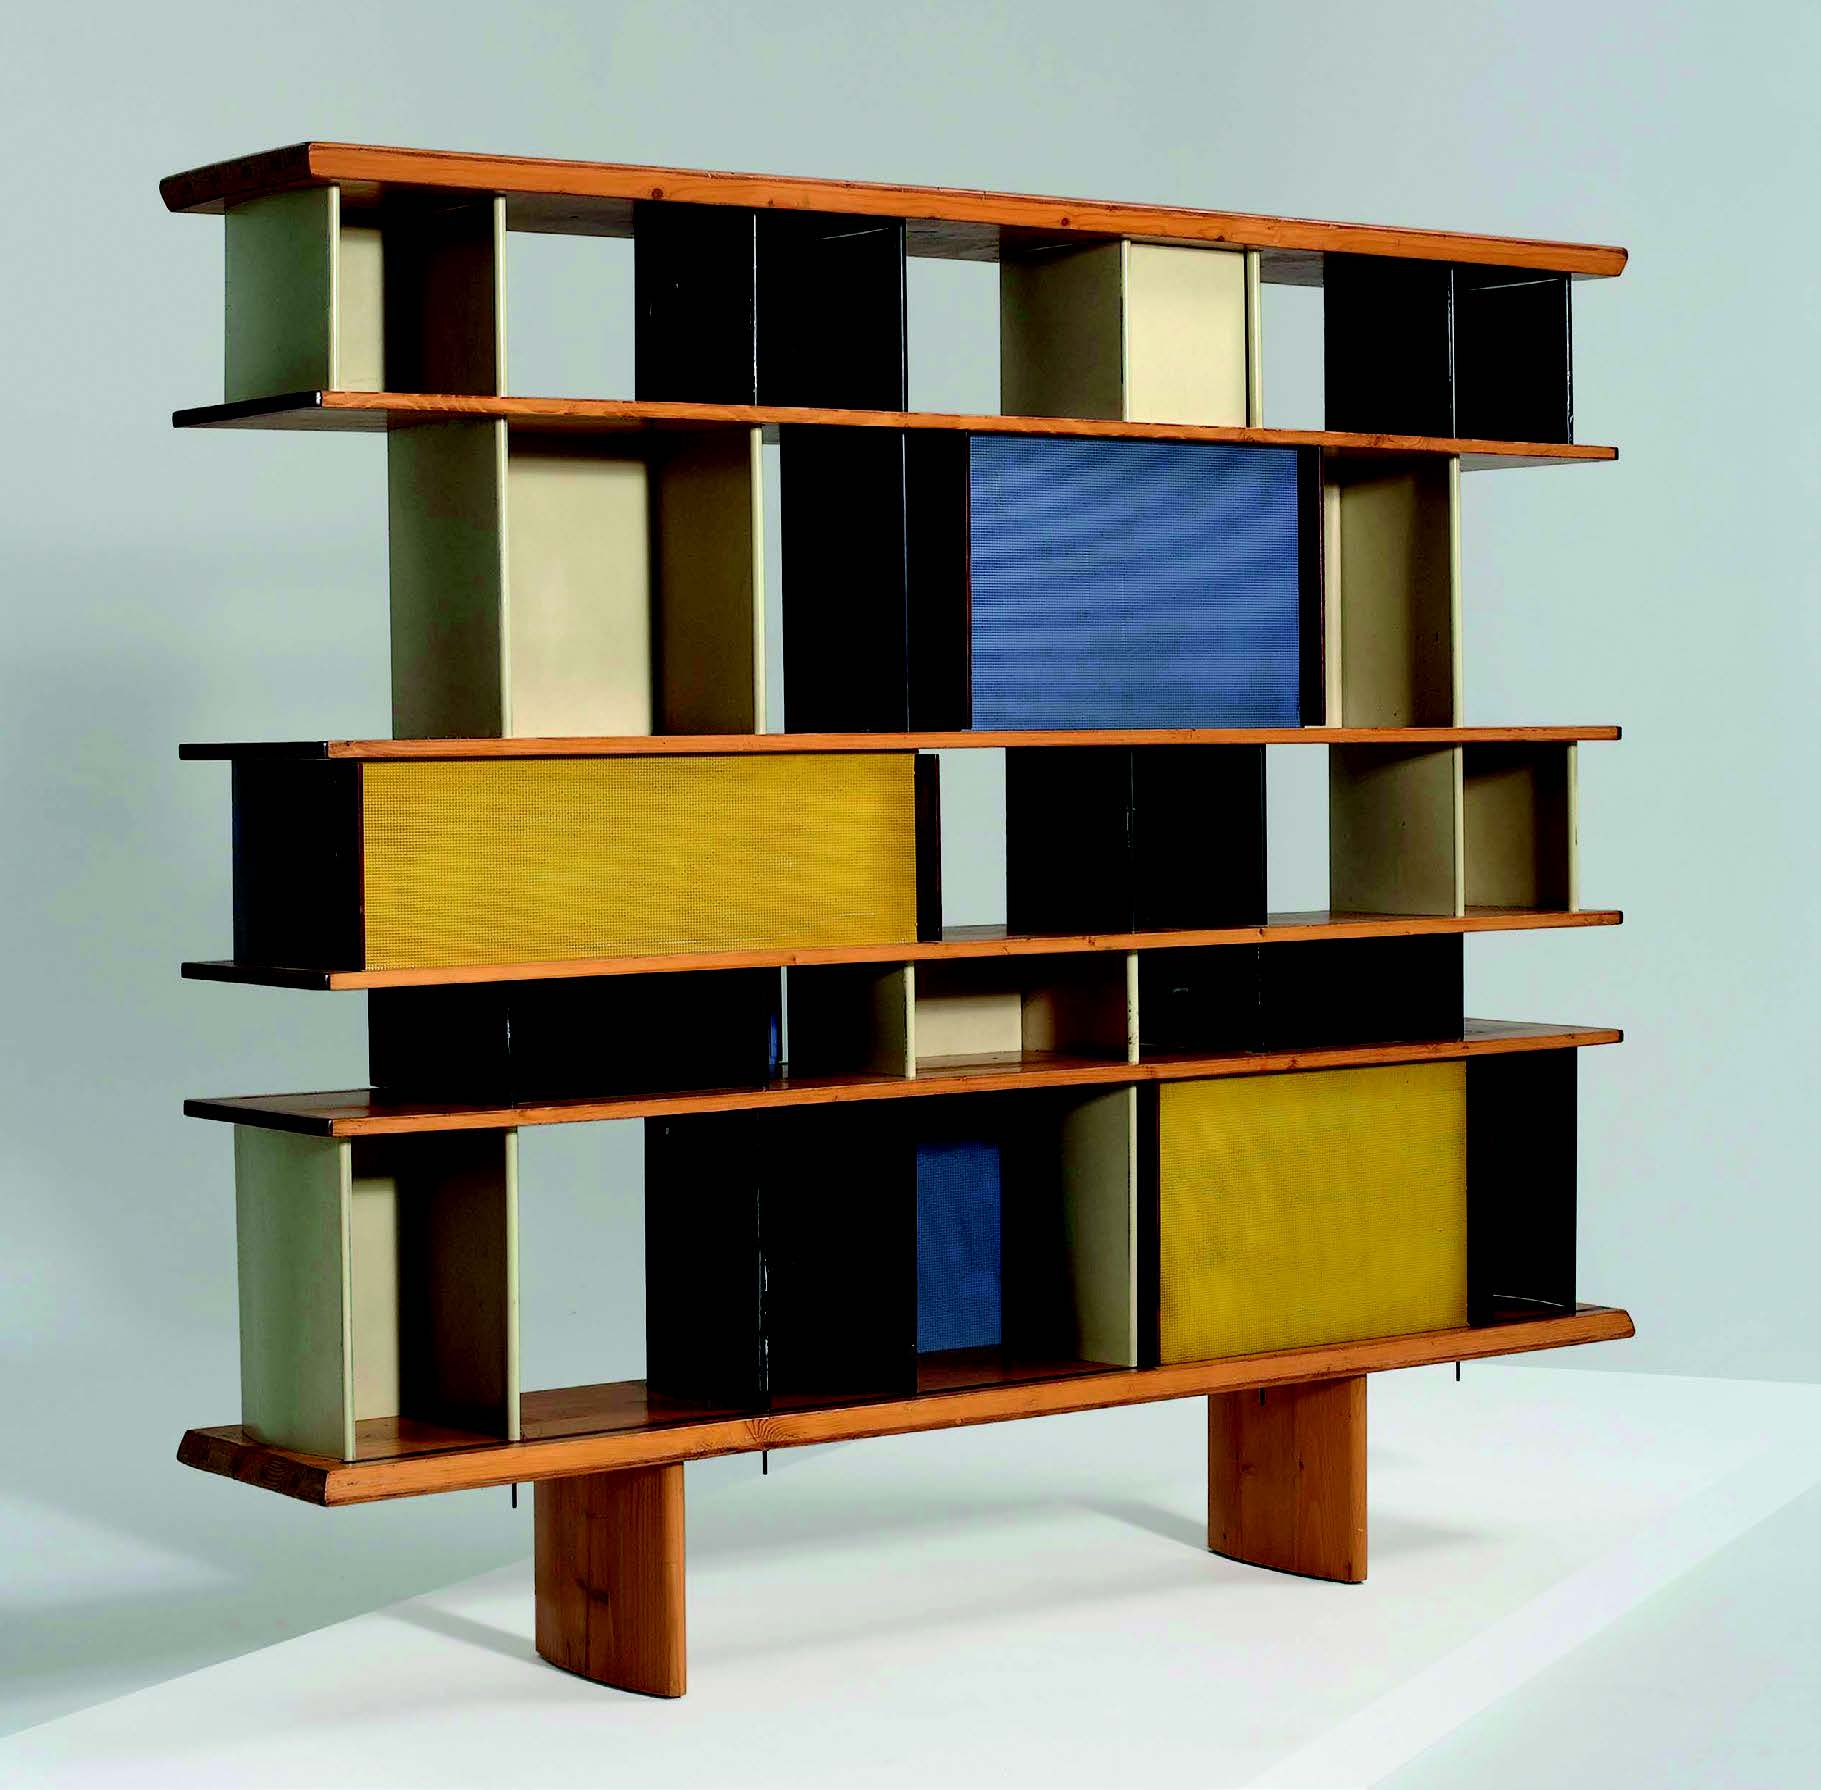 Charlotte Perriand Mexique, 1952, bookcase in pine, aluminium, painted bent steel, walnut, stained wood, for the Maison du Mexique, Cité Universitaire de Paris Sold for £115,000 in 2007. Image courtesy of Phillips